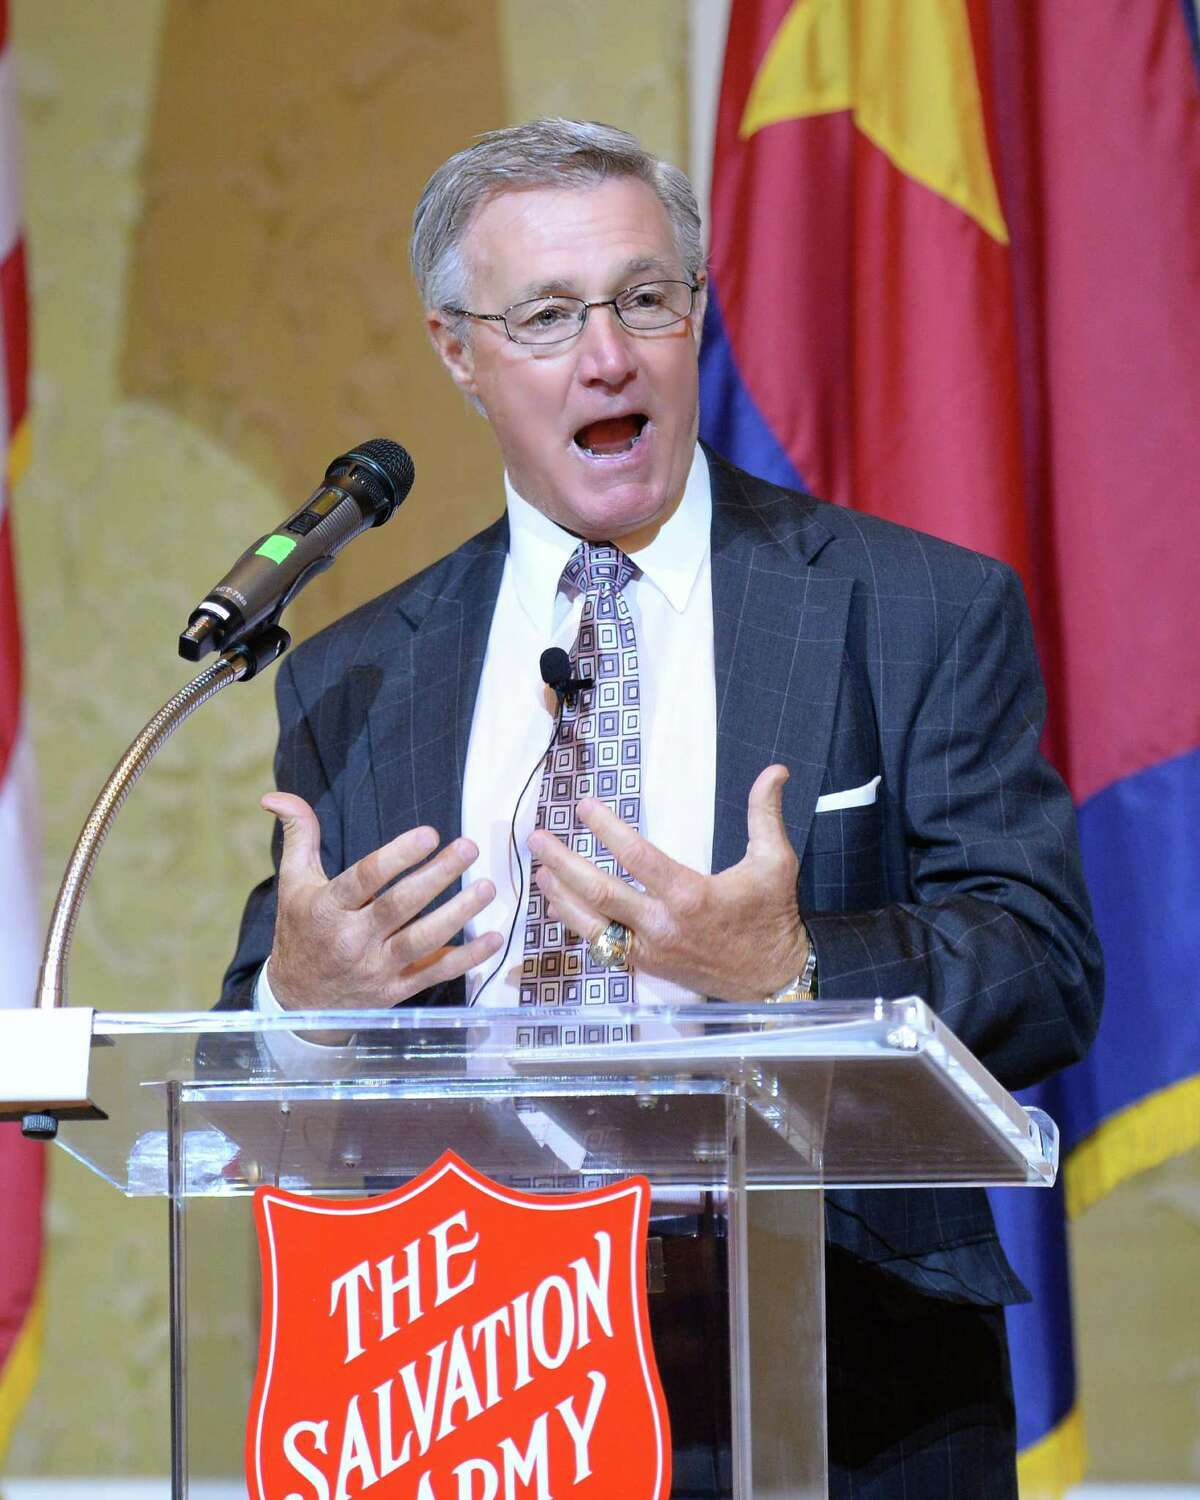 Keynote Speaker Tommy Bowden addresses attendees at the Salvation Army Annual Luncheon on Tuesday November 15, 2016 in Houston, TX.